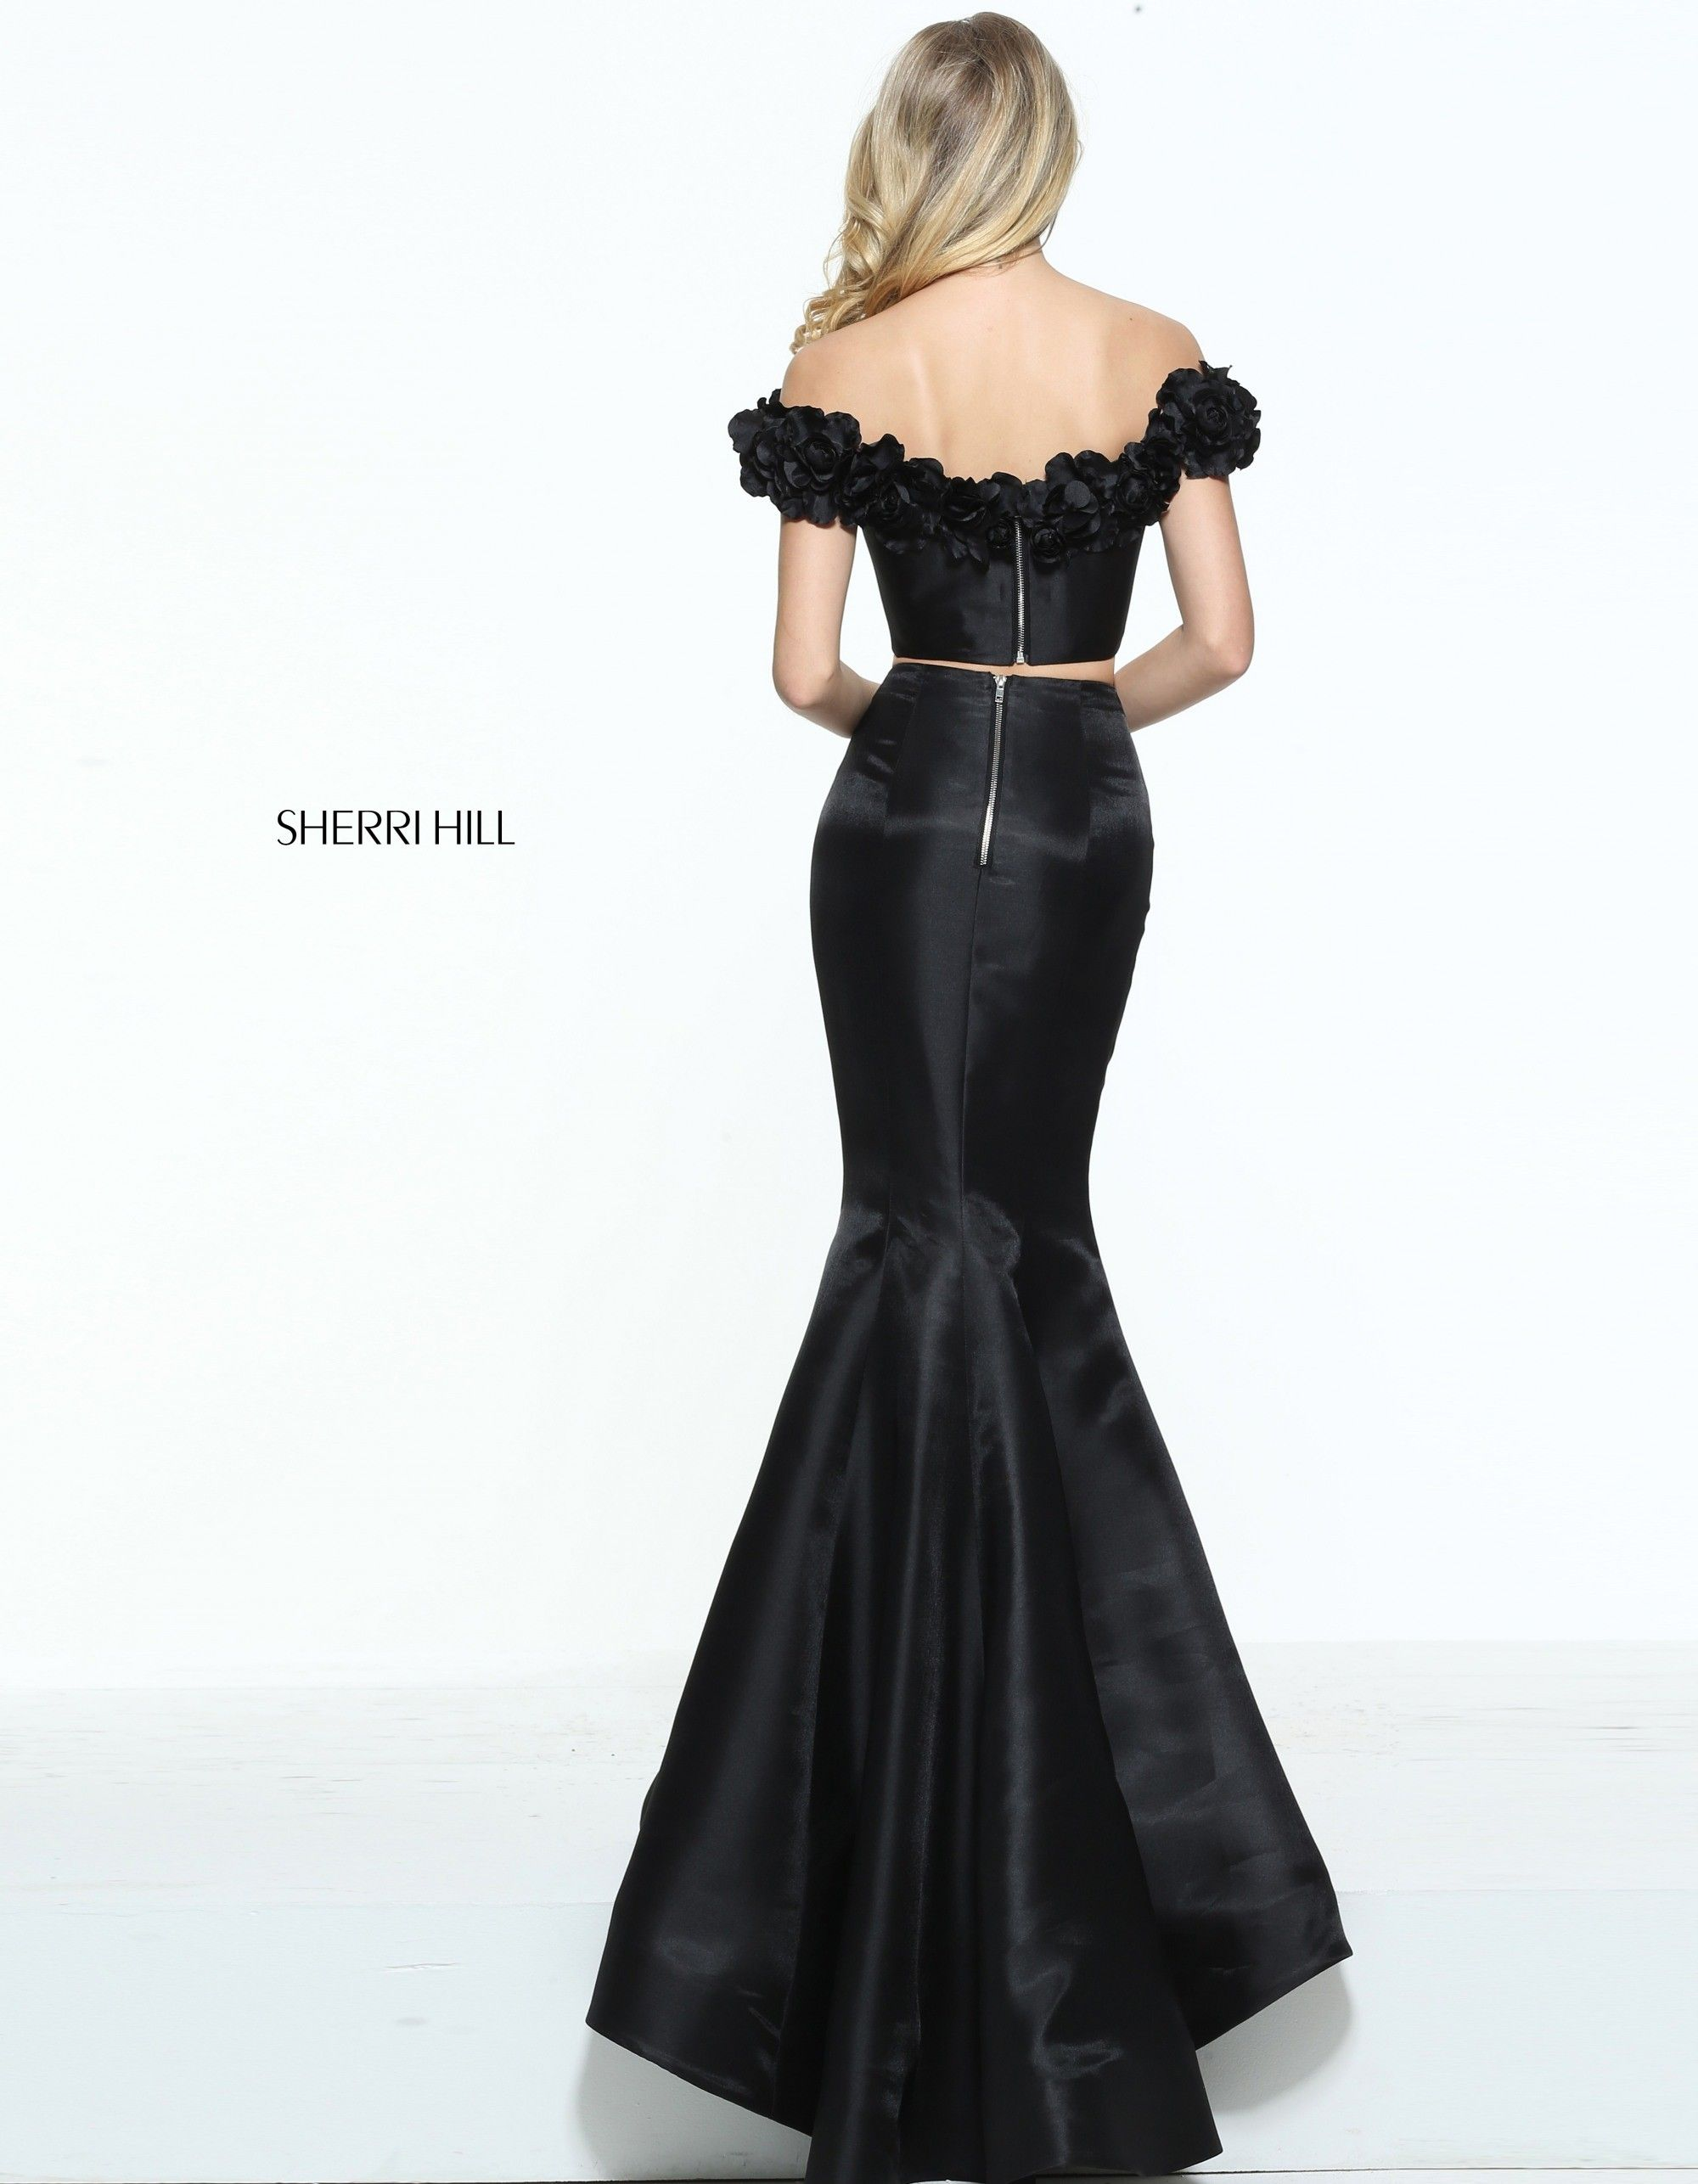 Sherri Hill 51028 Prom Dress | MadameBridal.com #sherri hill #prom dress #